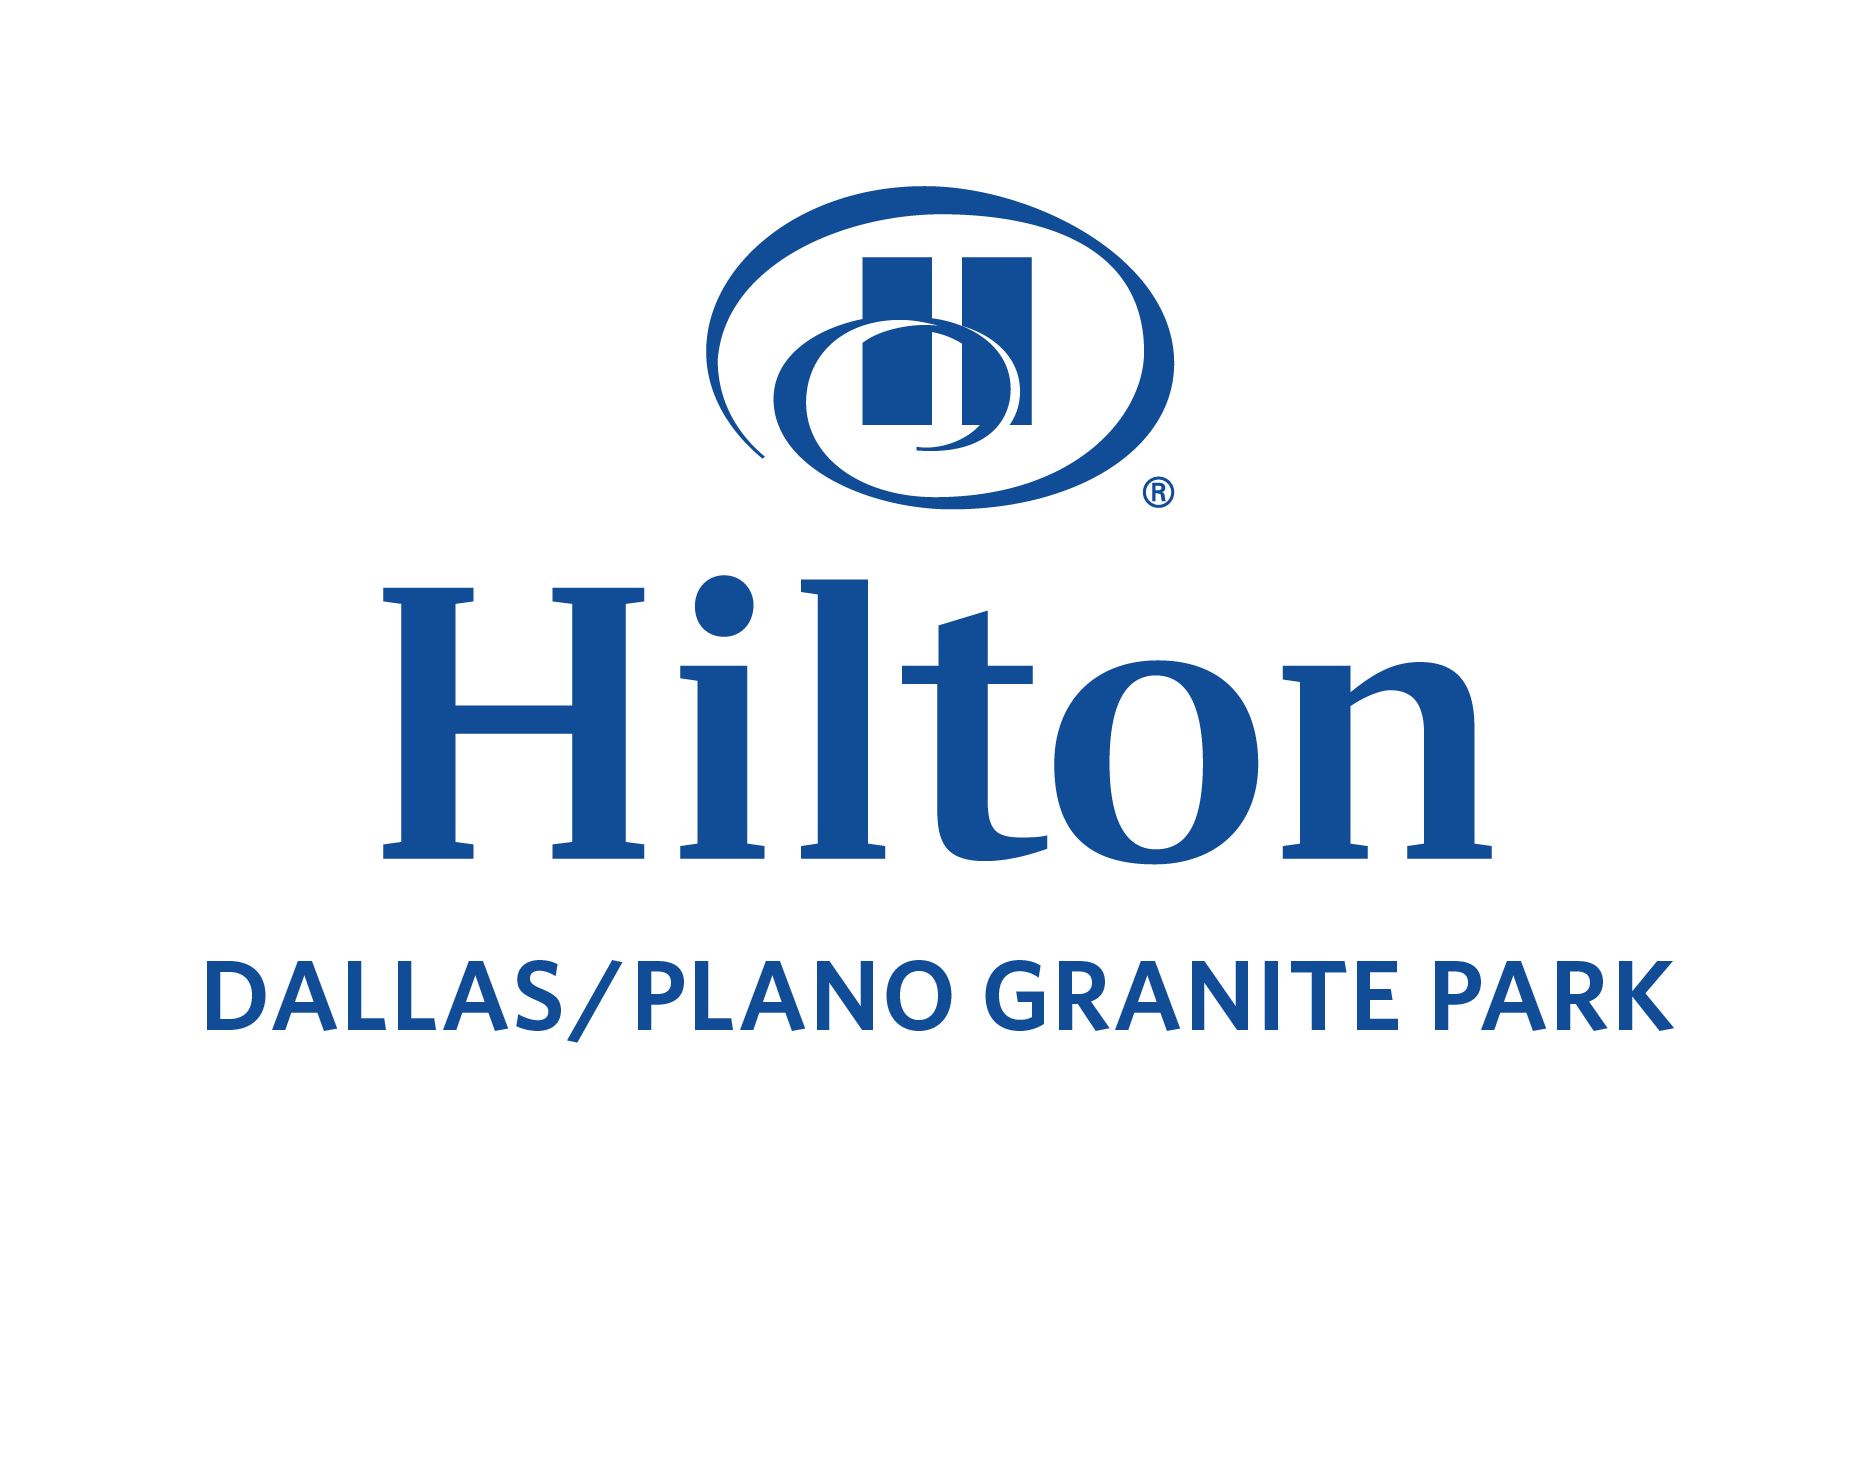 Hilton Dallas/Plano Granite Park Accommodations, Venues